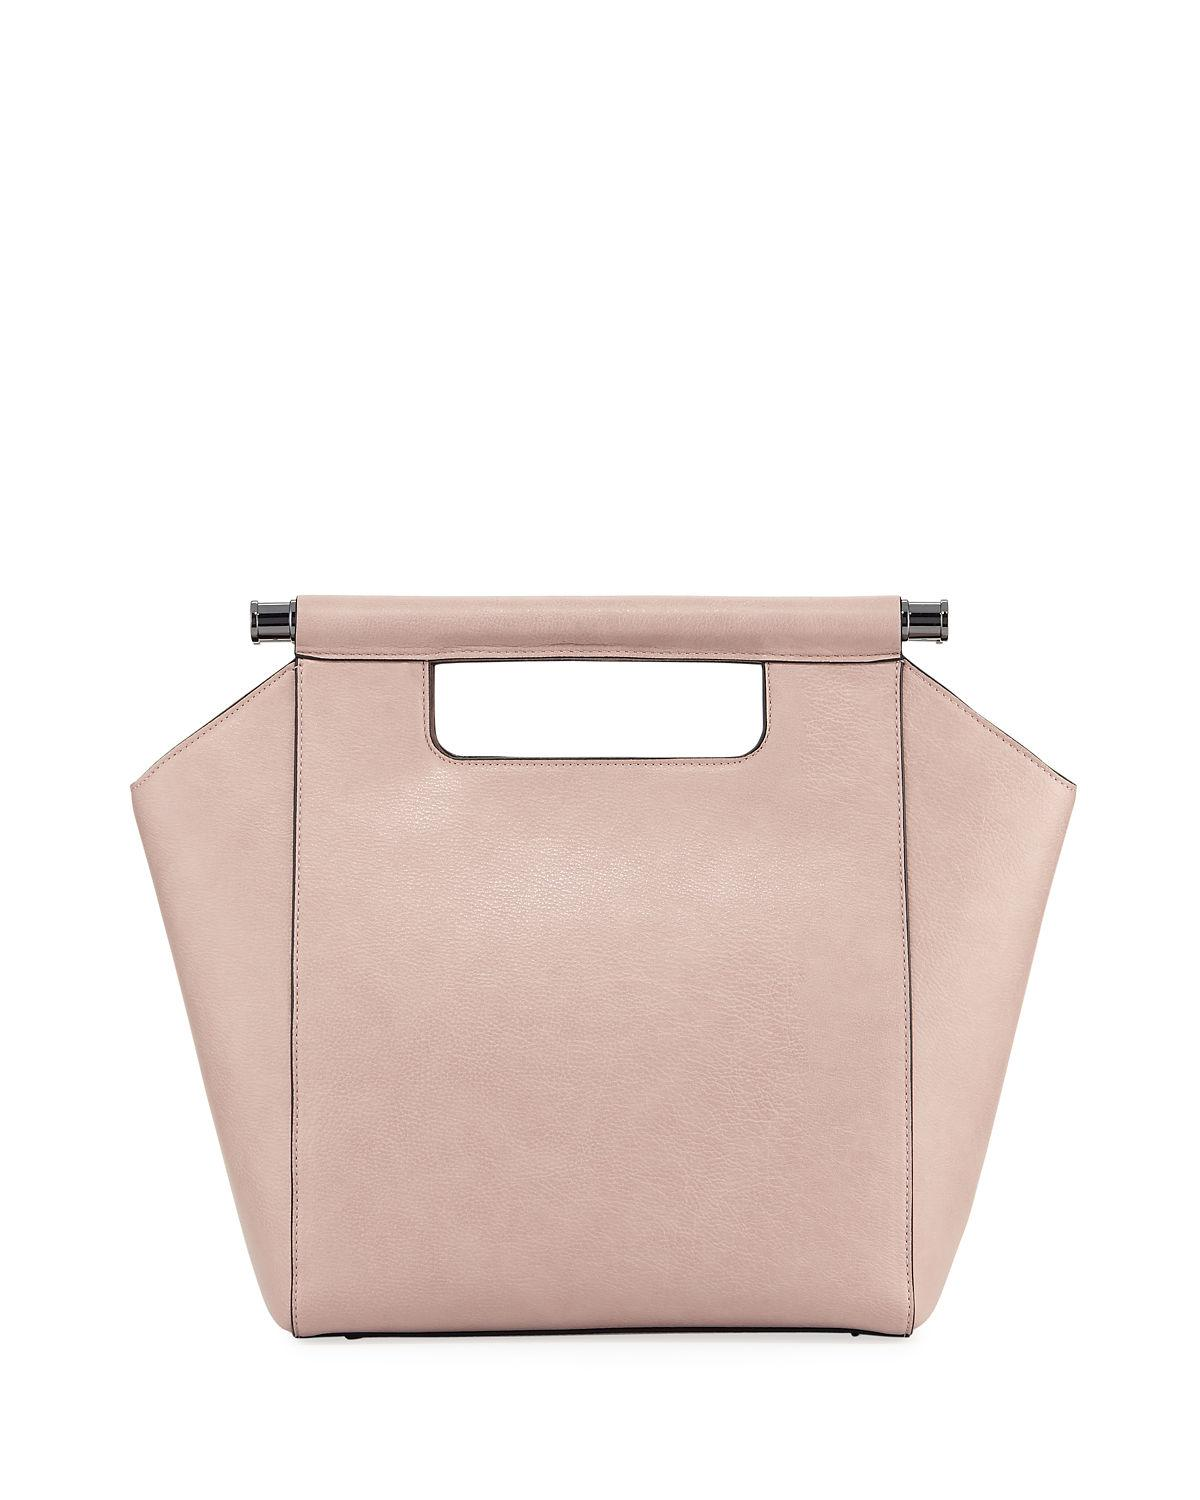 cdb41559a7c6 Neiman Marcus Minimalista Top-Handle Tote Bag In Pink